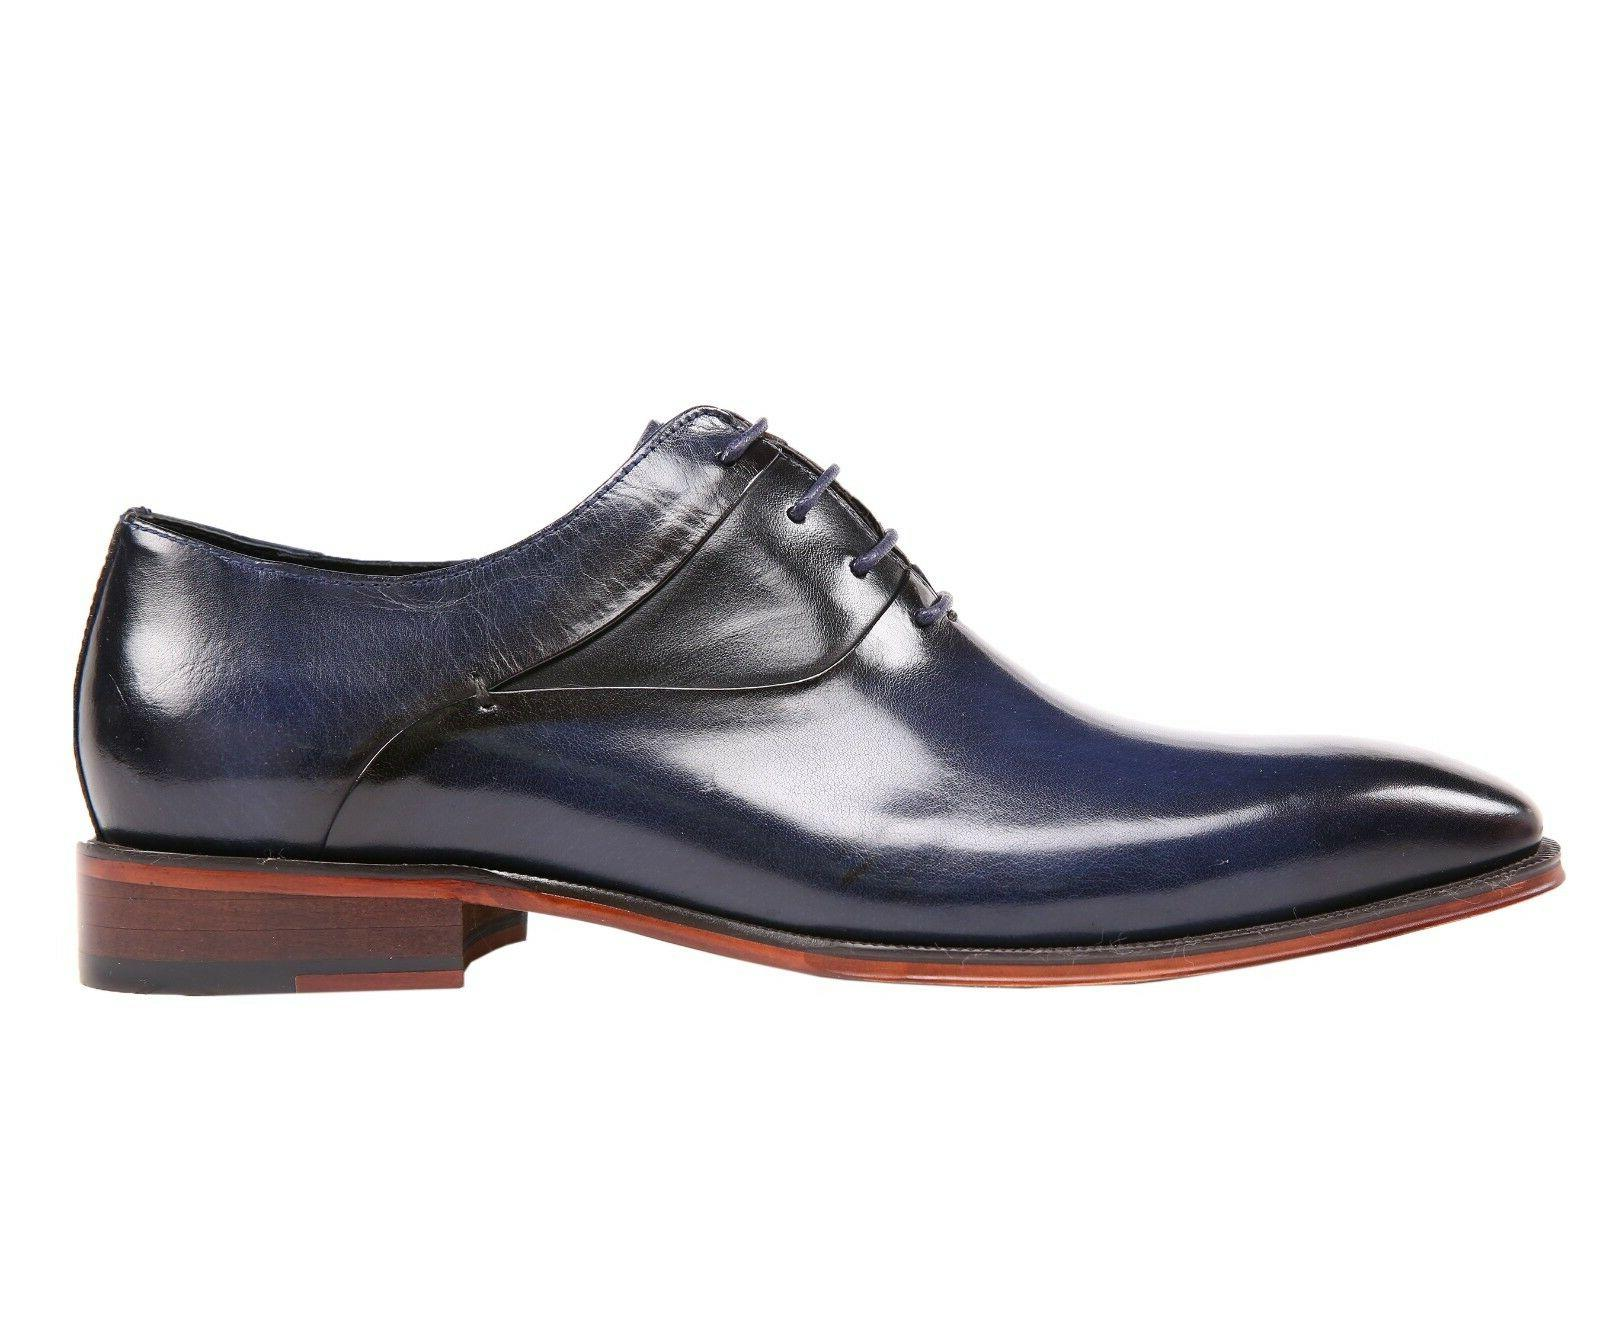 Leather Cap Toe Up Oxford Shoe : AG609